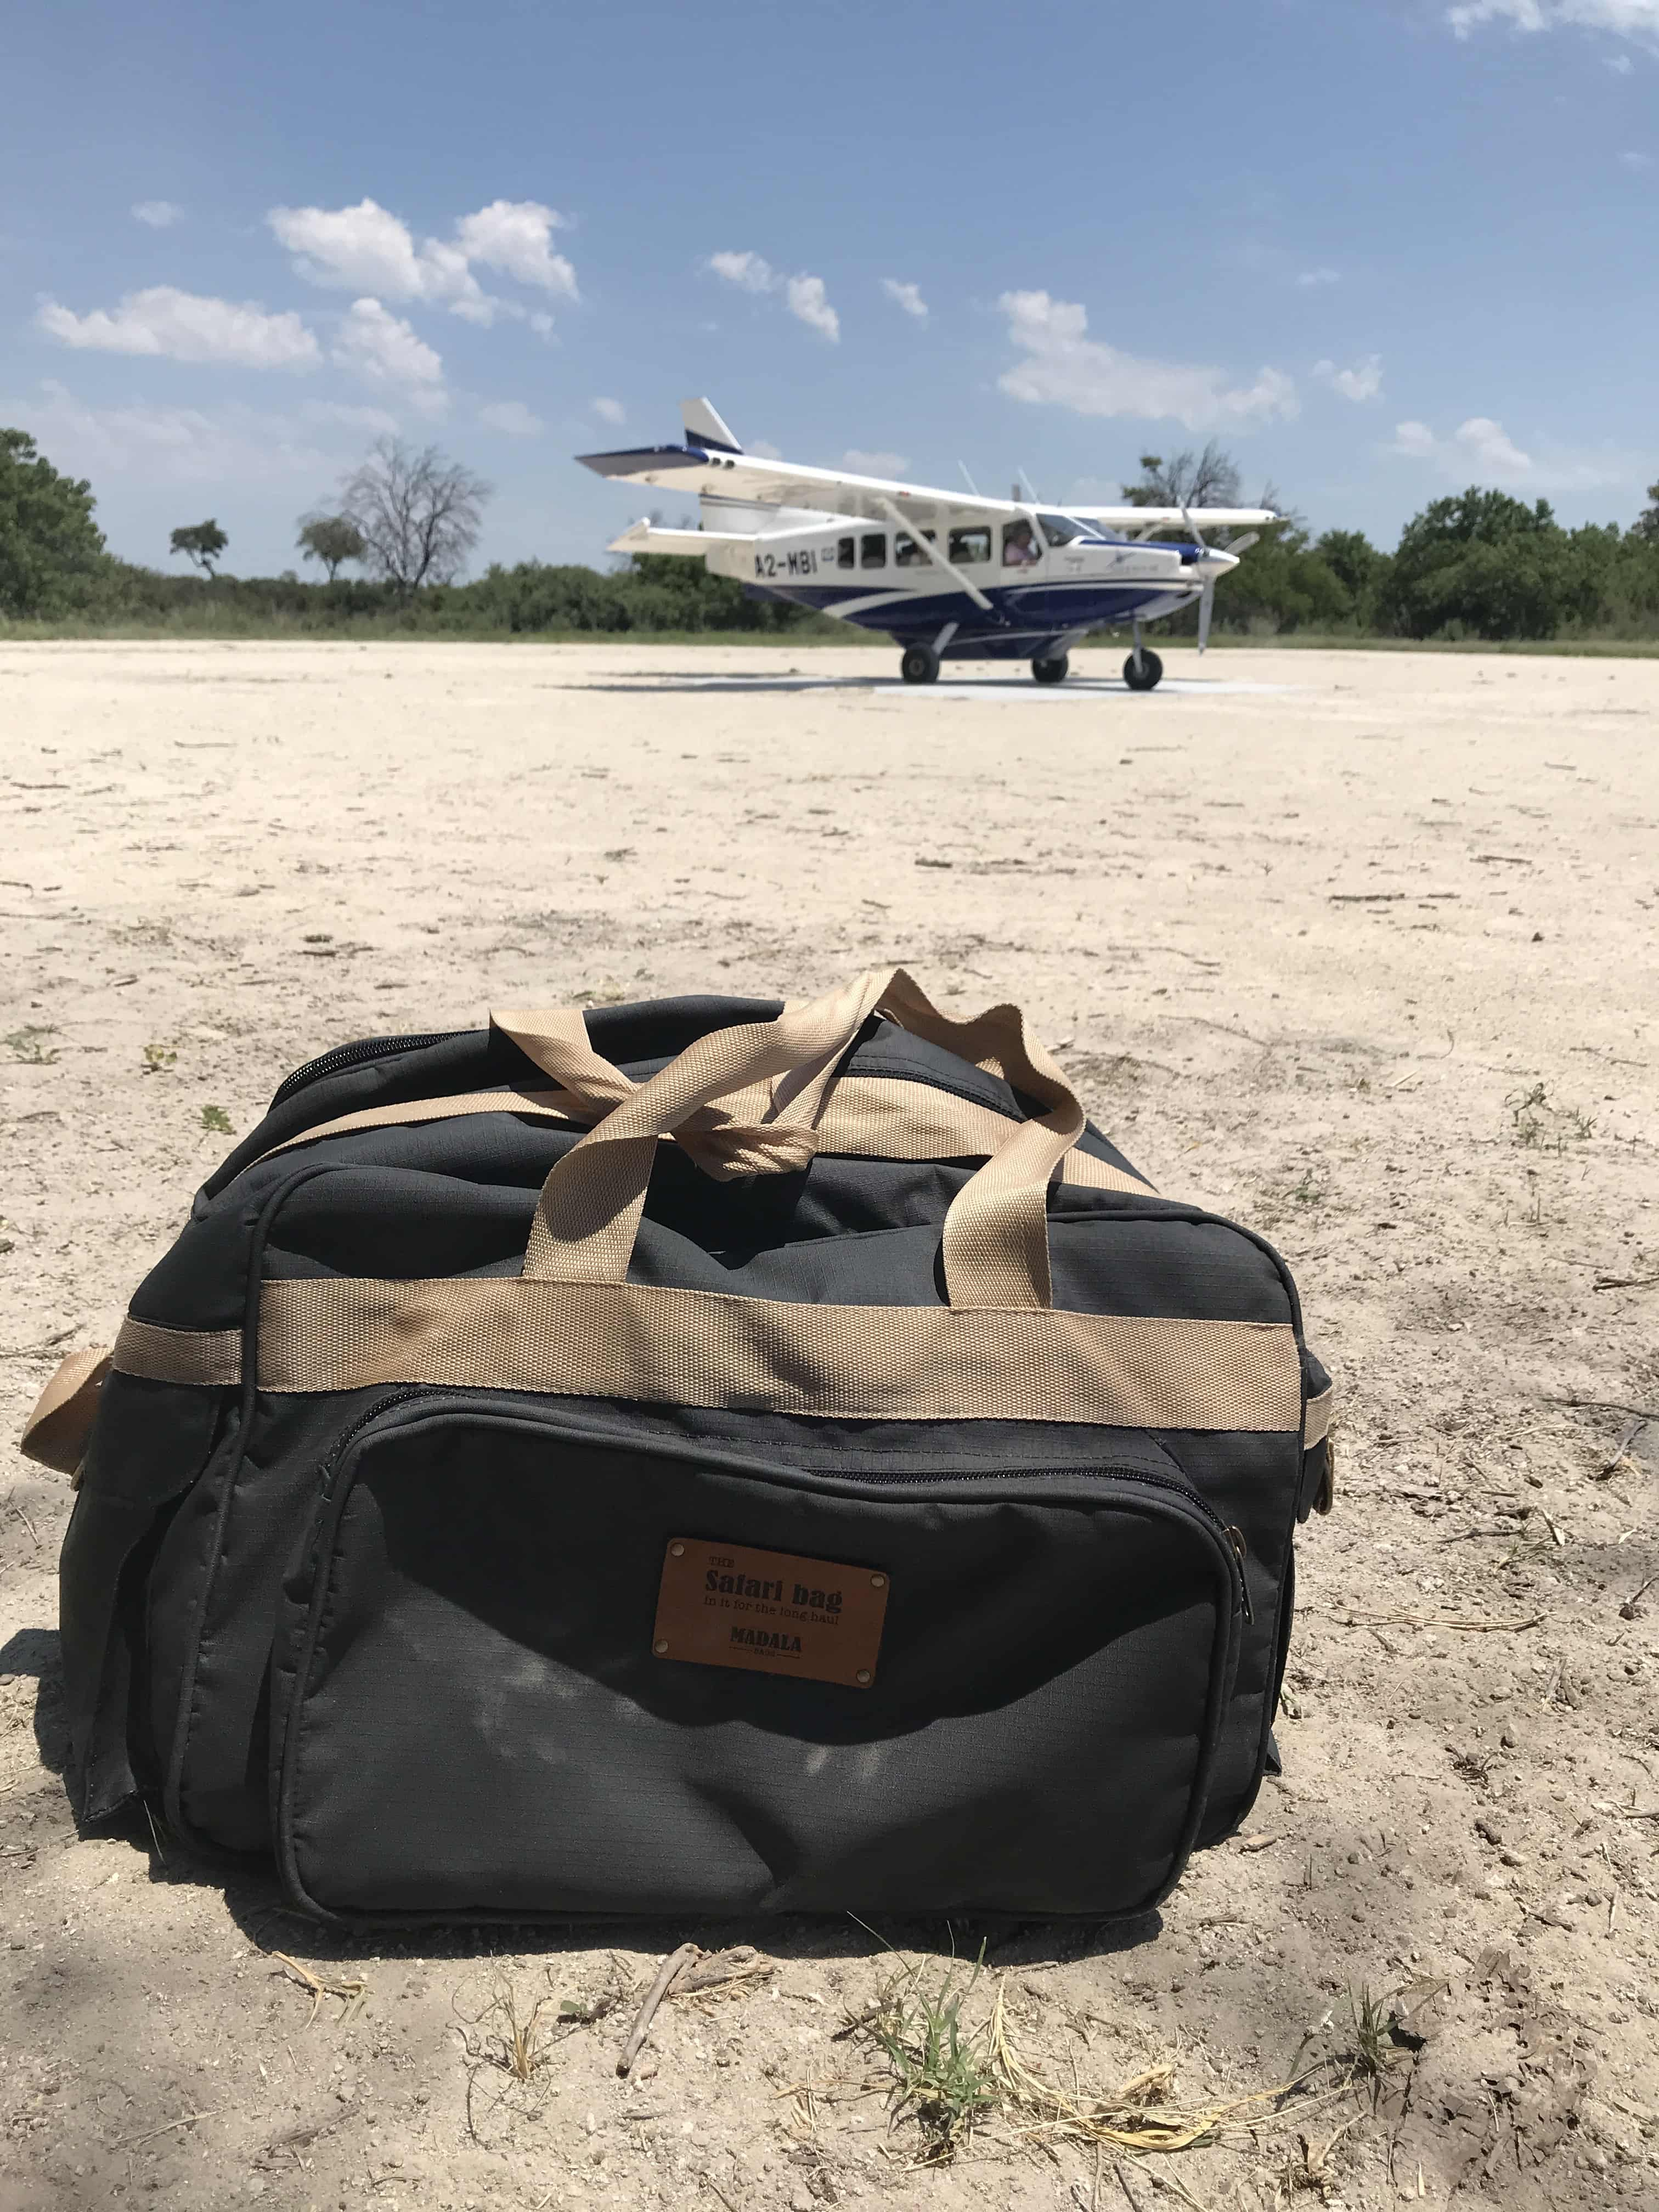 My Safari Bag on the sandy airstrip with the small plane we're about to board in the background.